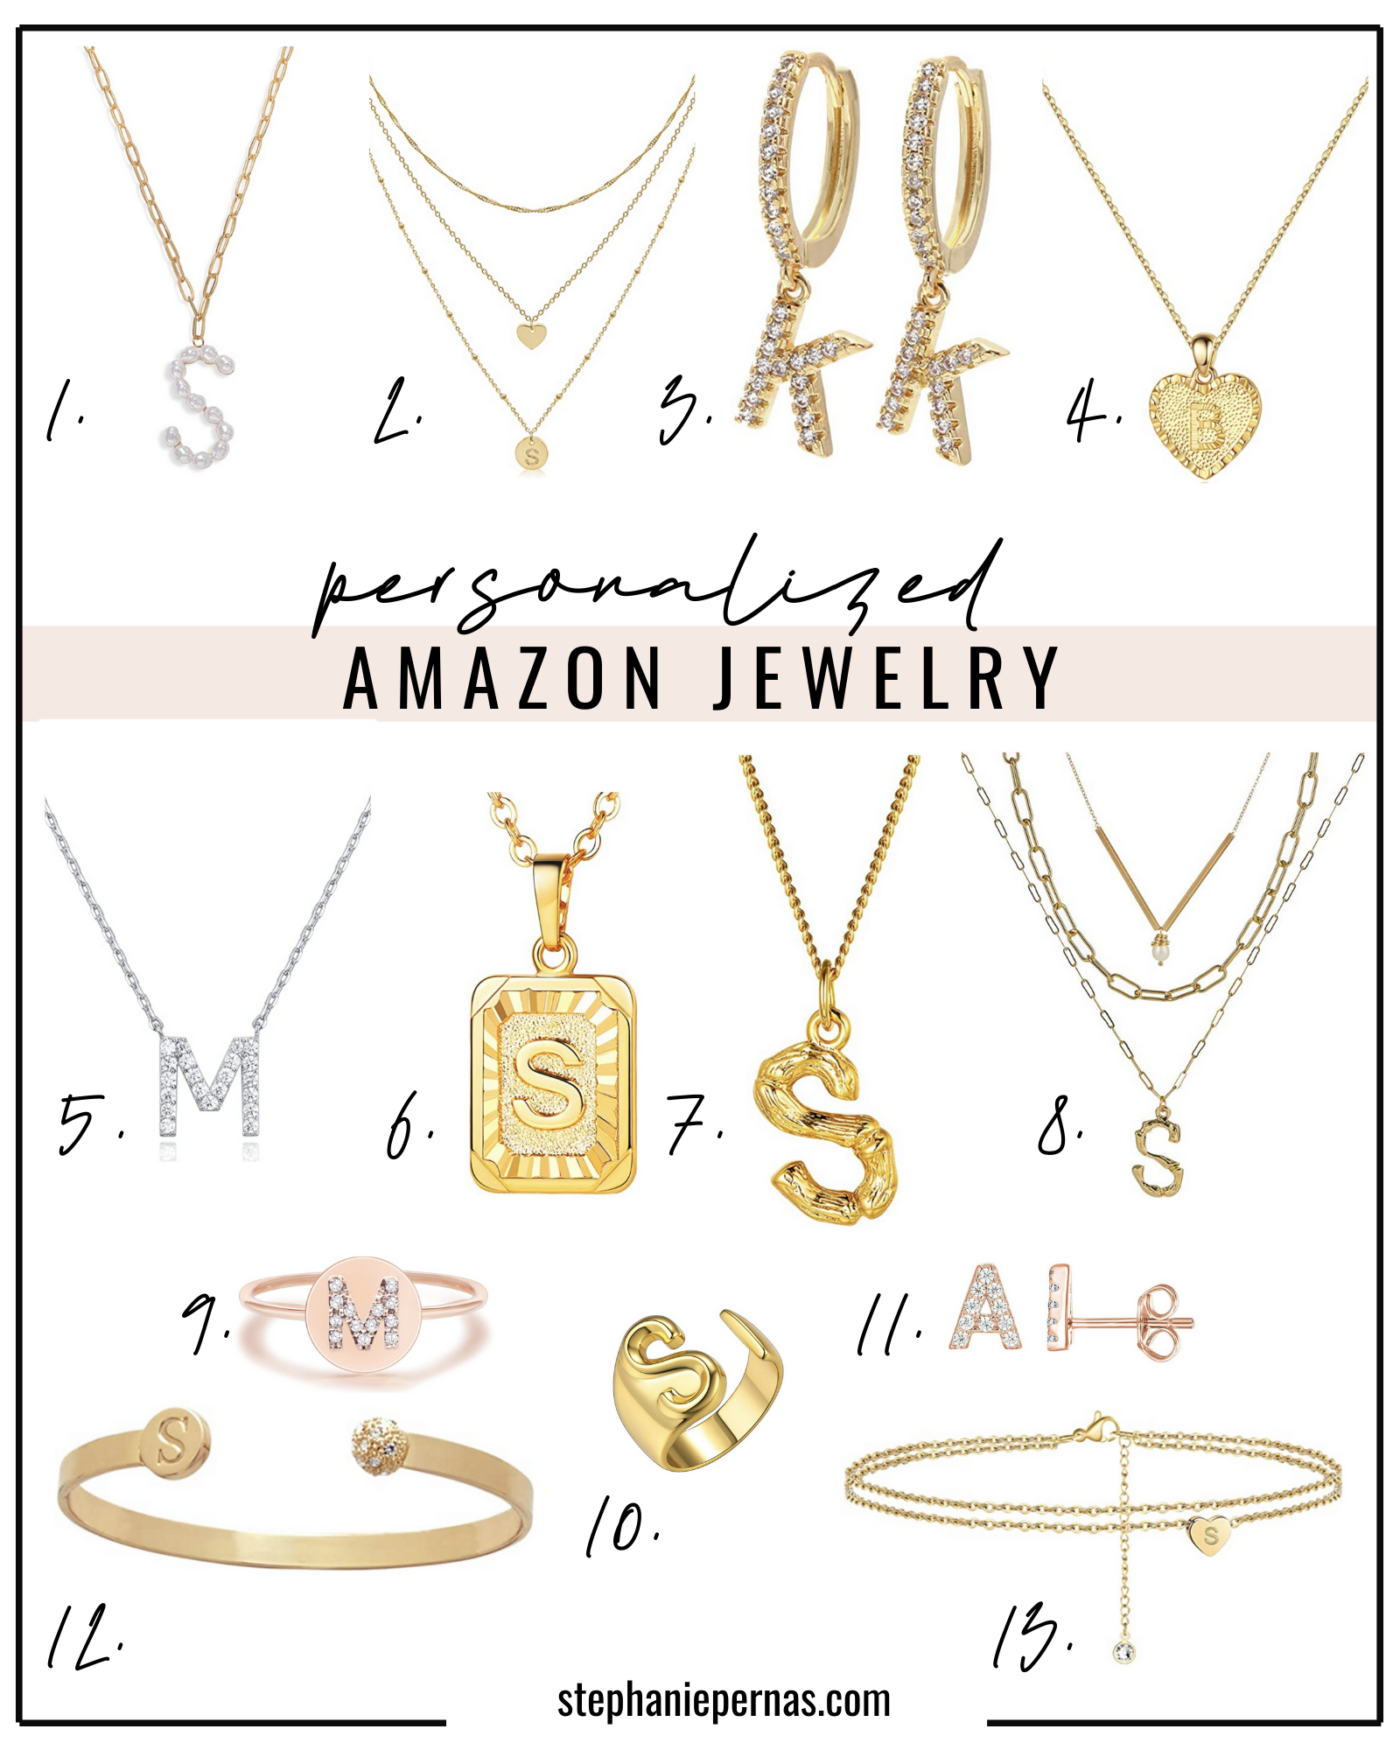 Personalized-Amazon-Jewelry